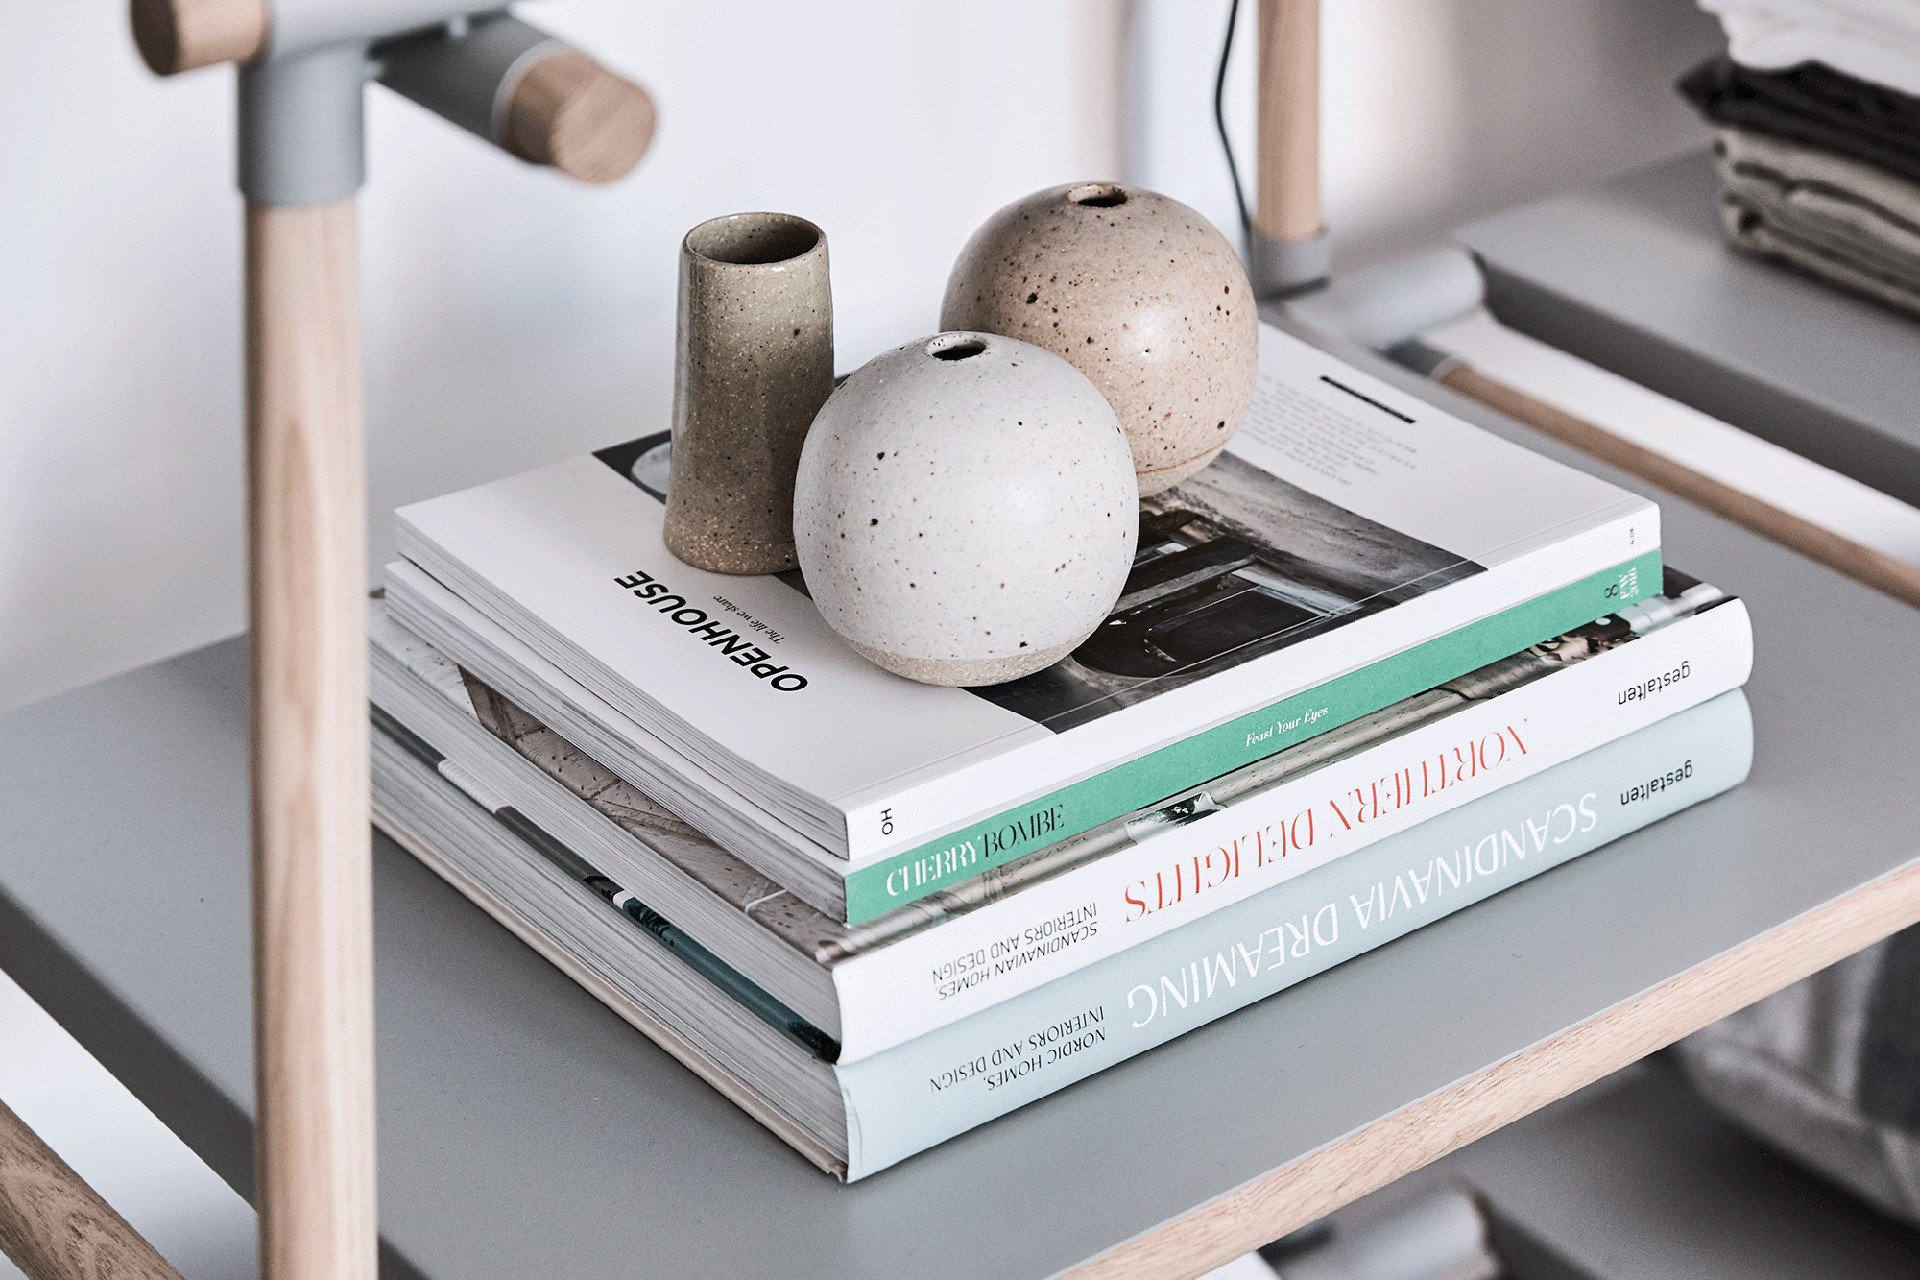 speckled handmade vessel on stack of books in bed showroom